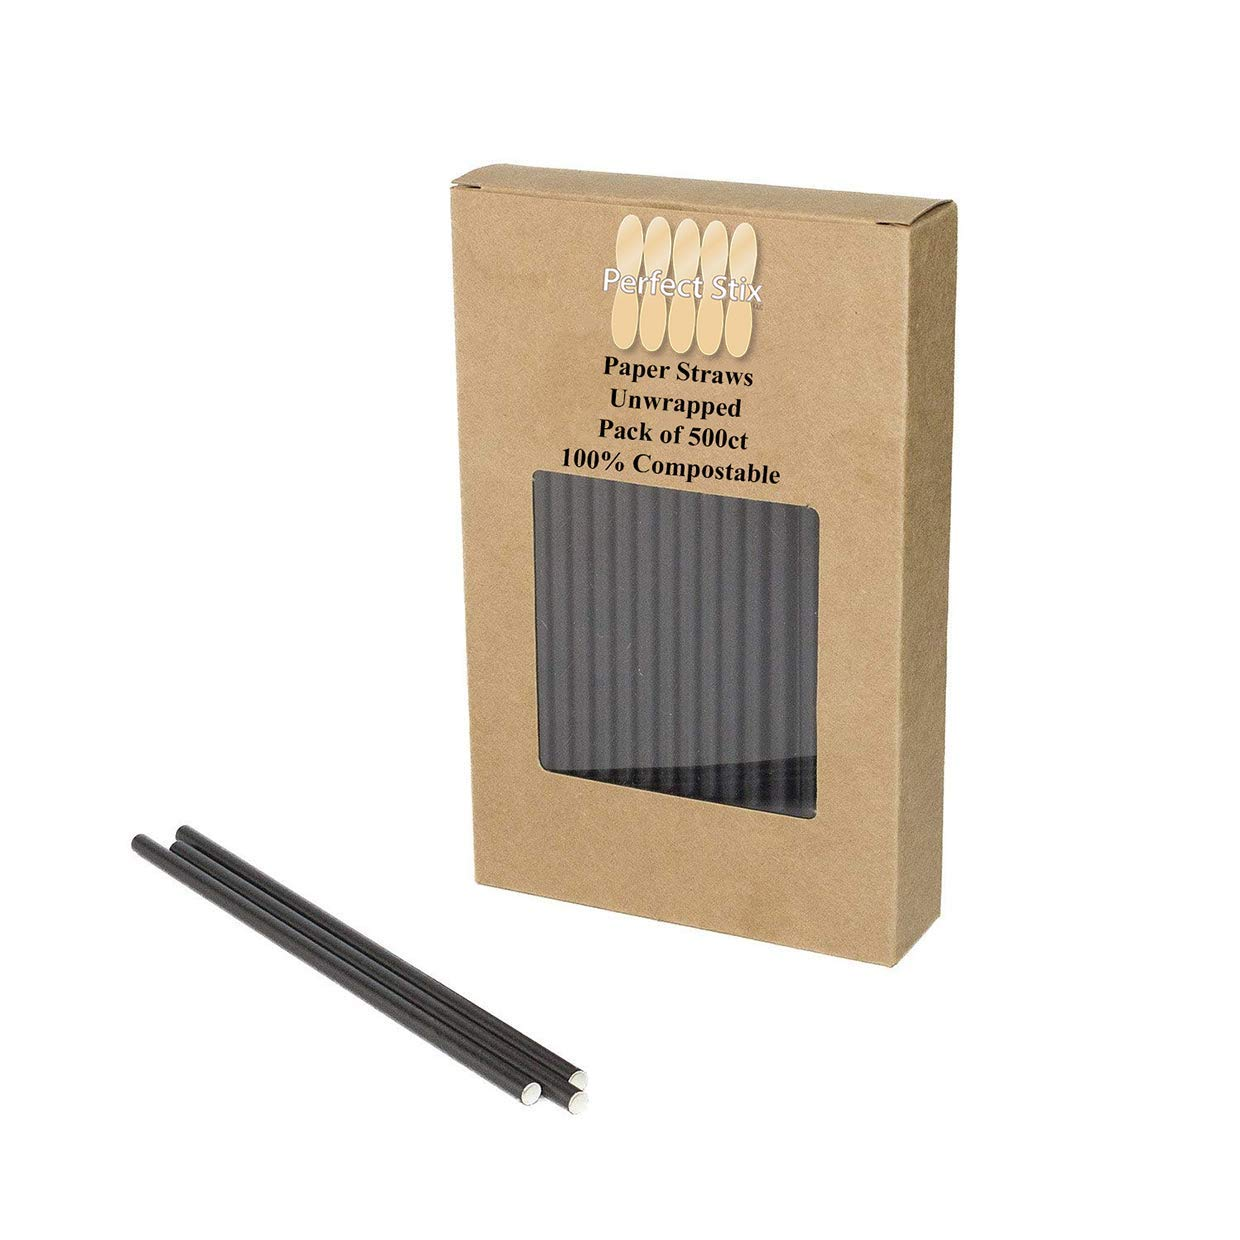 Perfectware 7.75 Jumbo Paper Straw Black-5000 7.75'' Jumbo Paper Straws- Unwrapped Case of 5000ct (Pack of 5000)